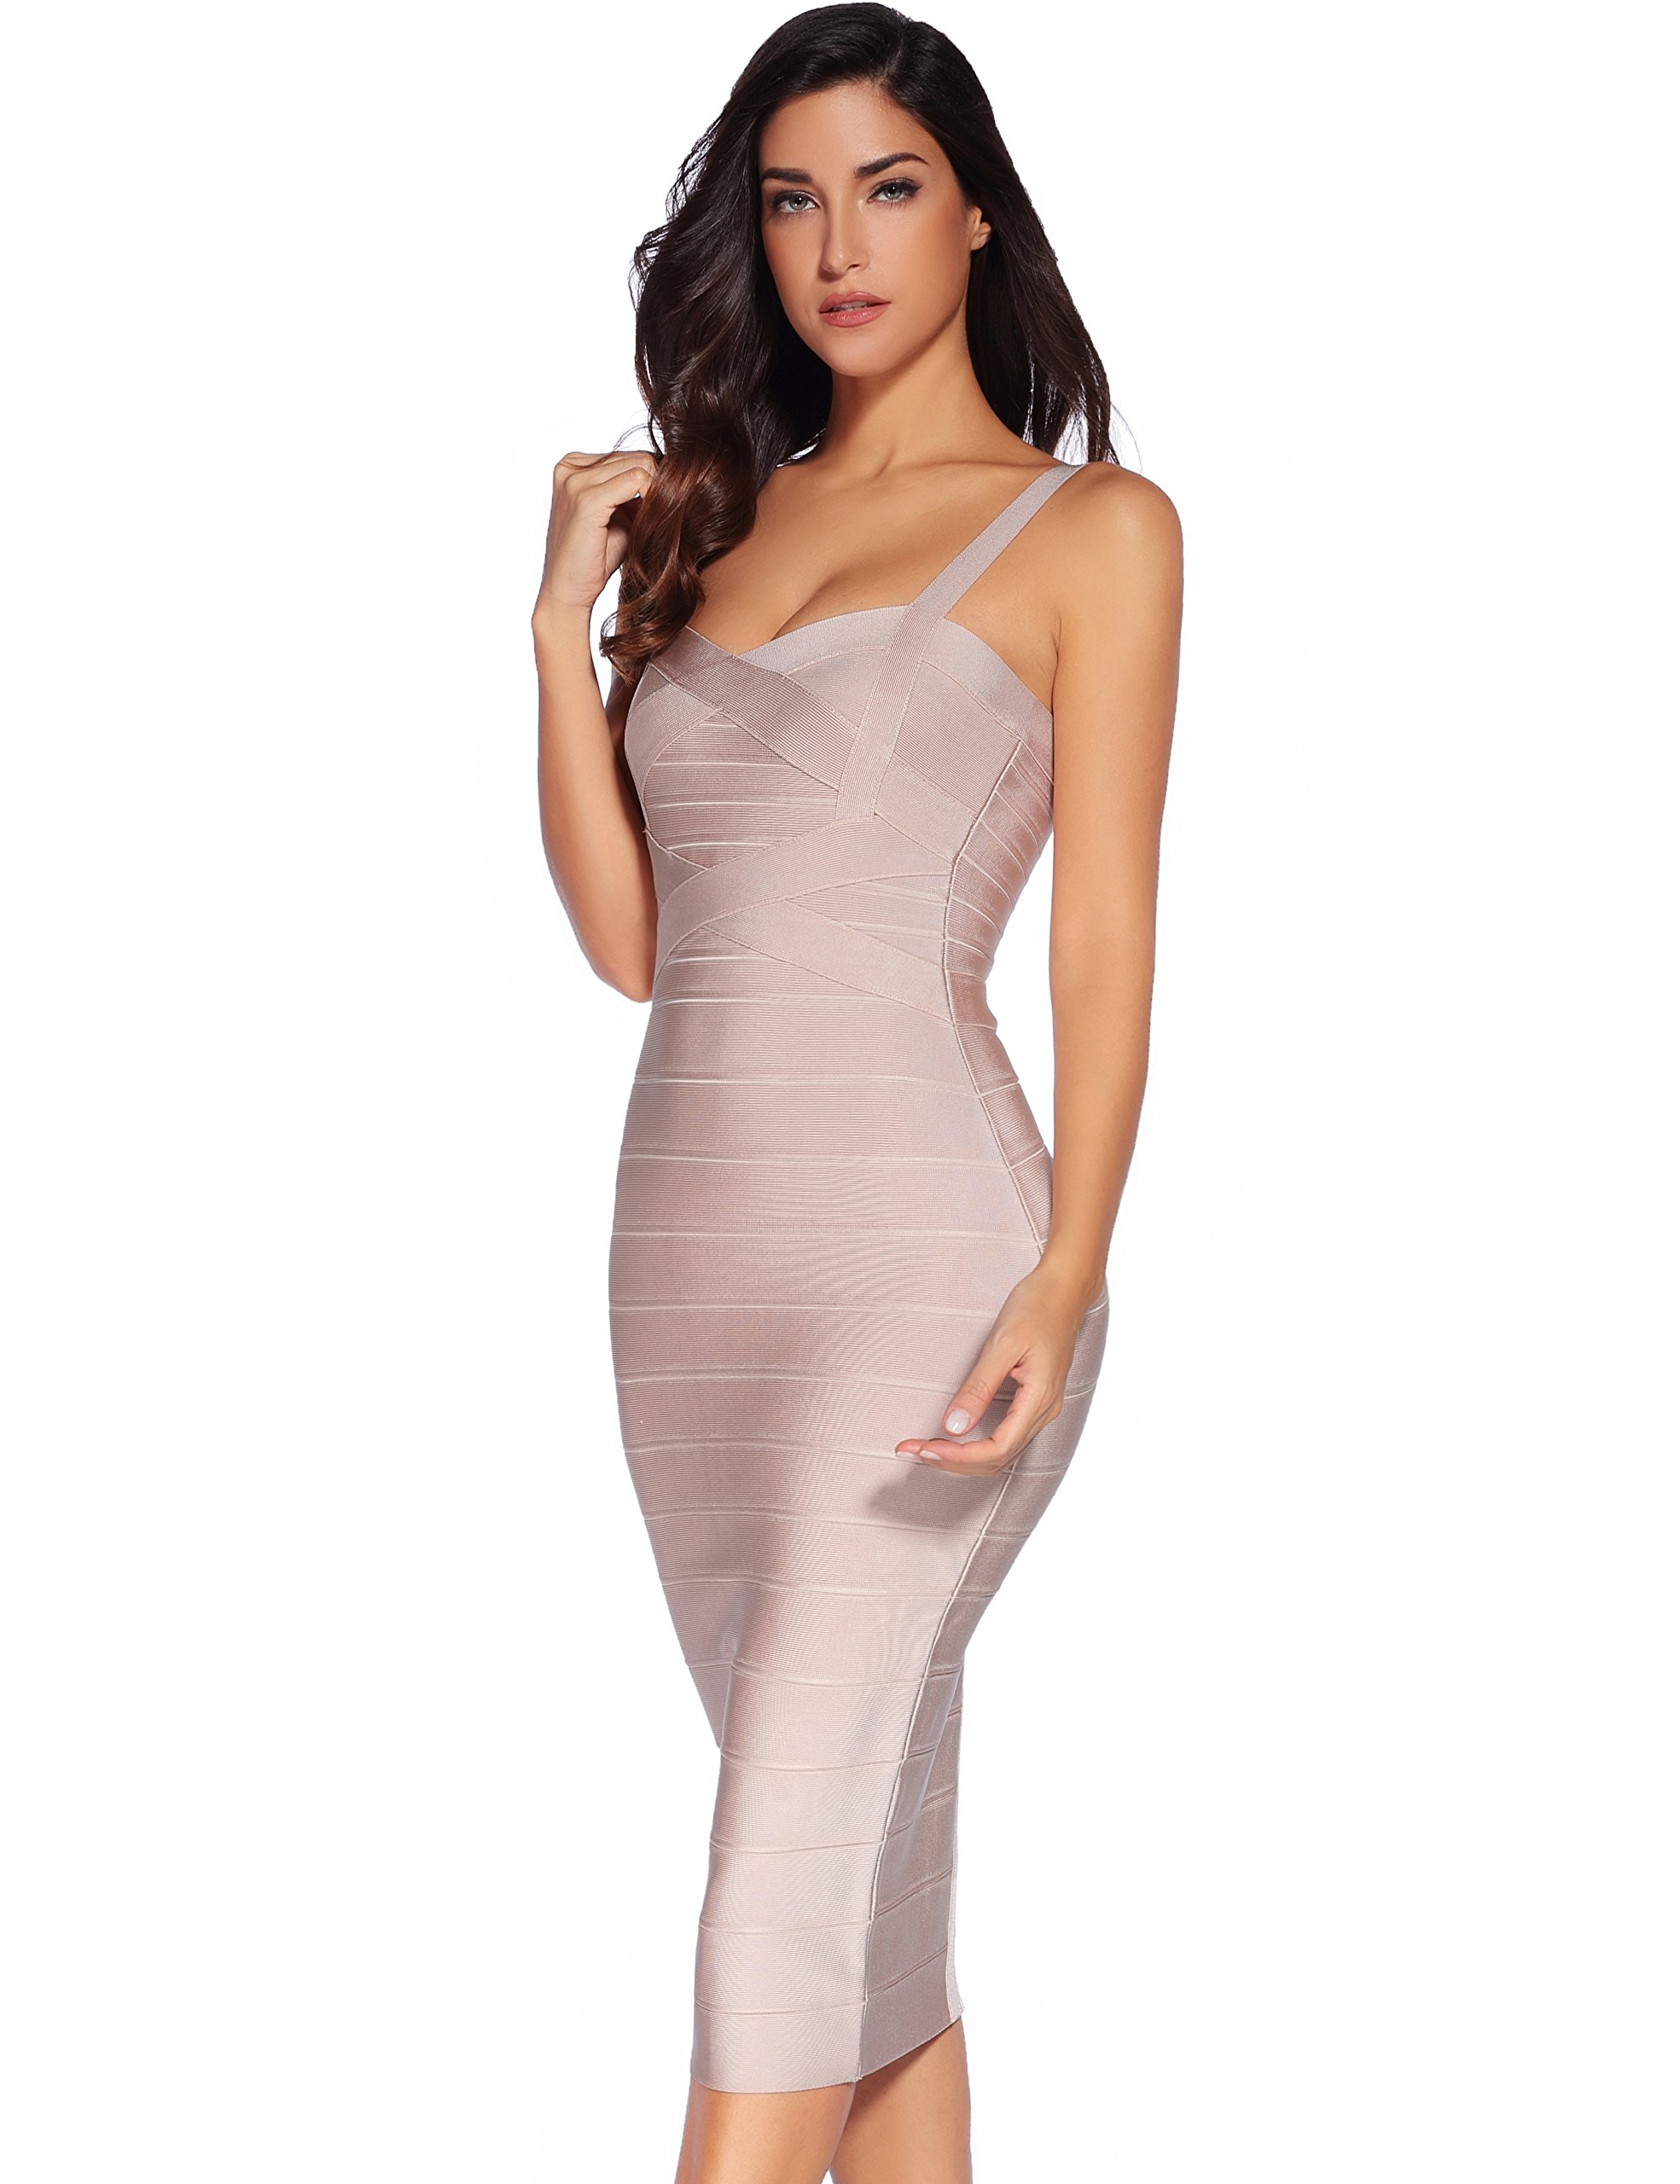 4289111d970 Meilun Women s Strap Midi Bandage Dress Length Party Solid Prom Bodycon  Dress   Club   Night Out   Clothing